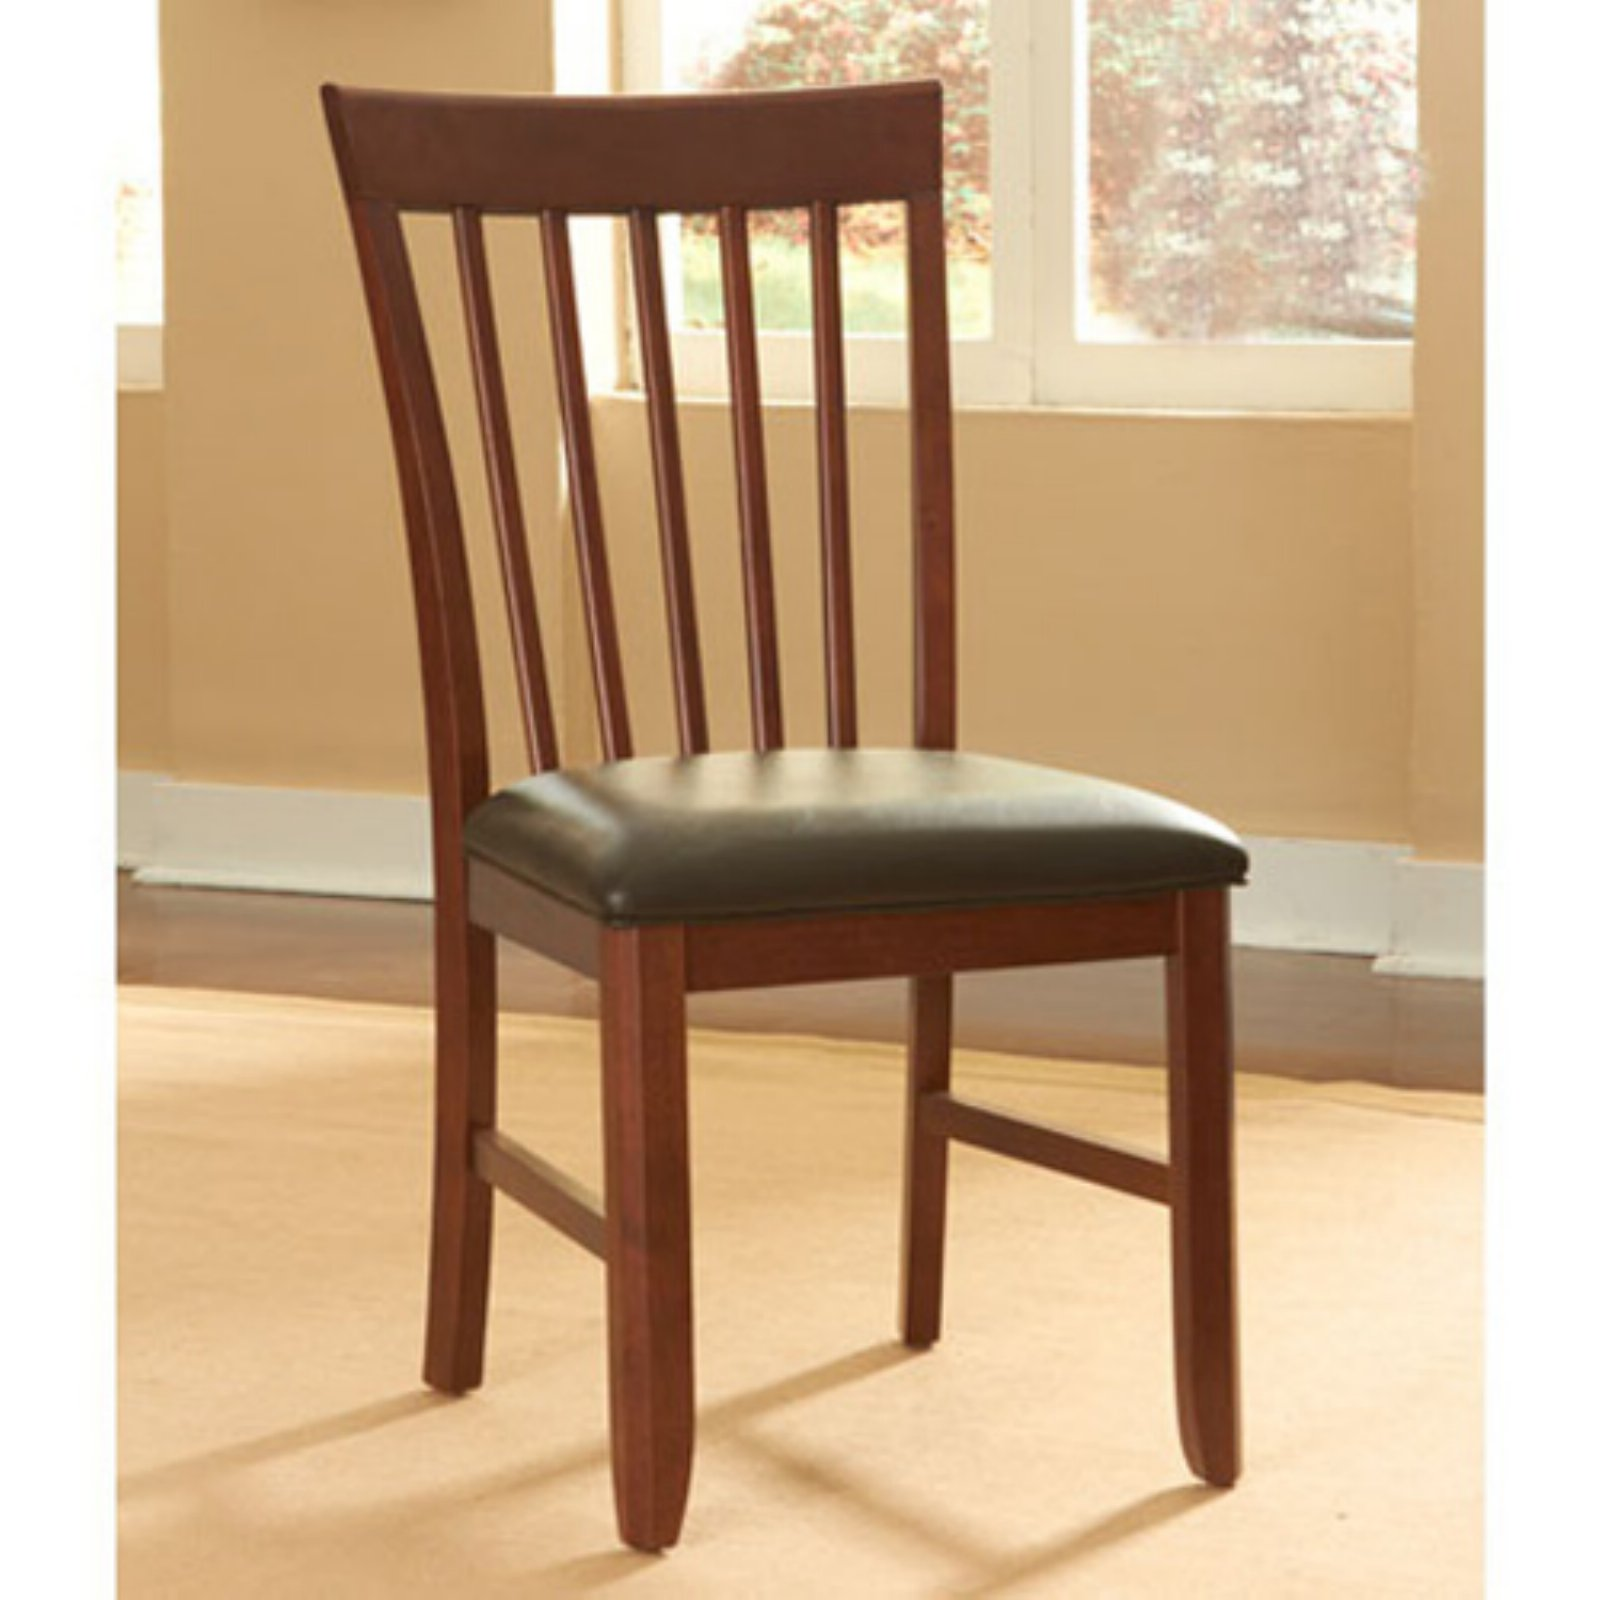 A-America Granite Convertible Slatback Upholstered Side Chairs - Set of 2